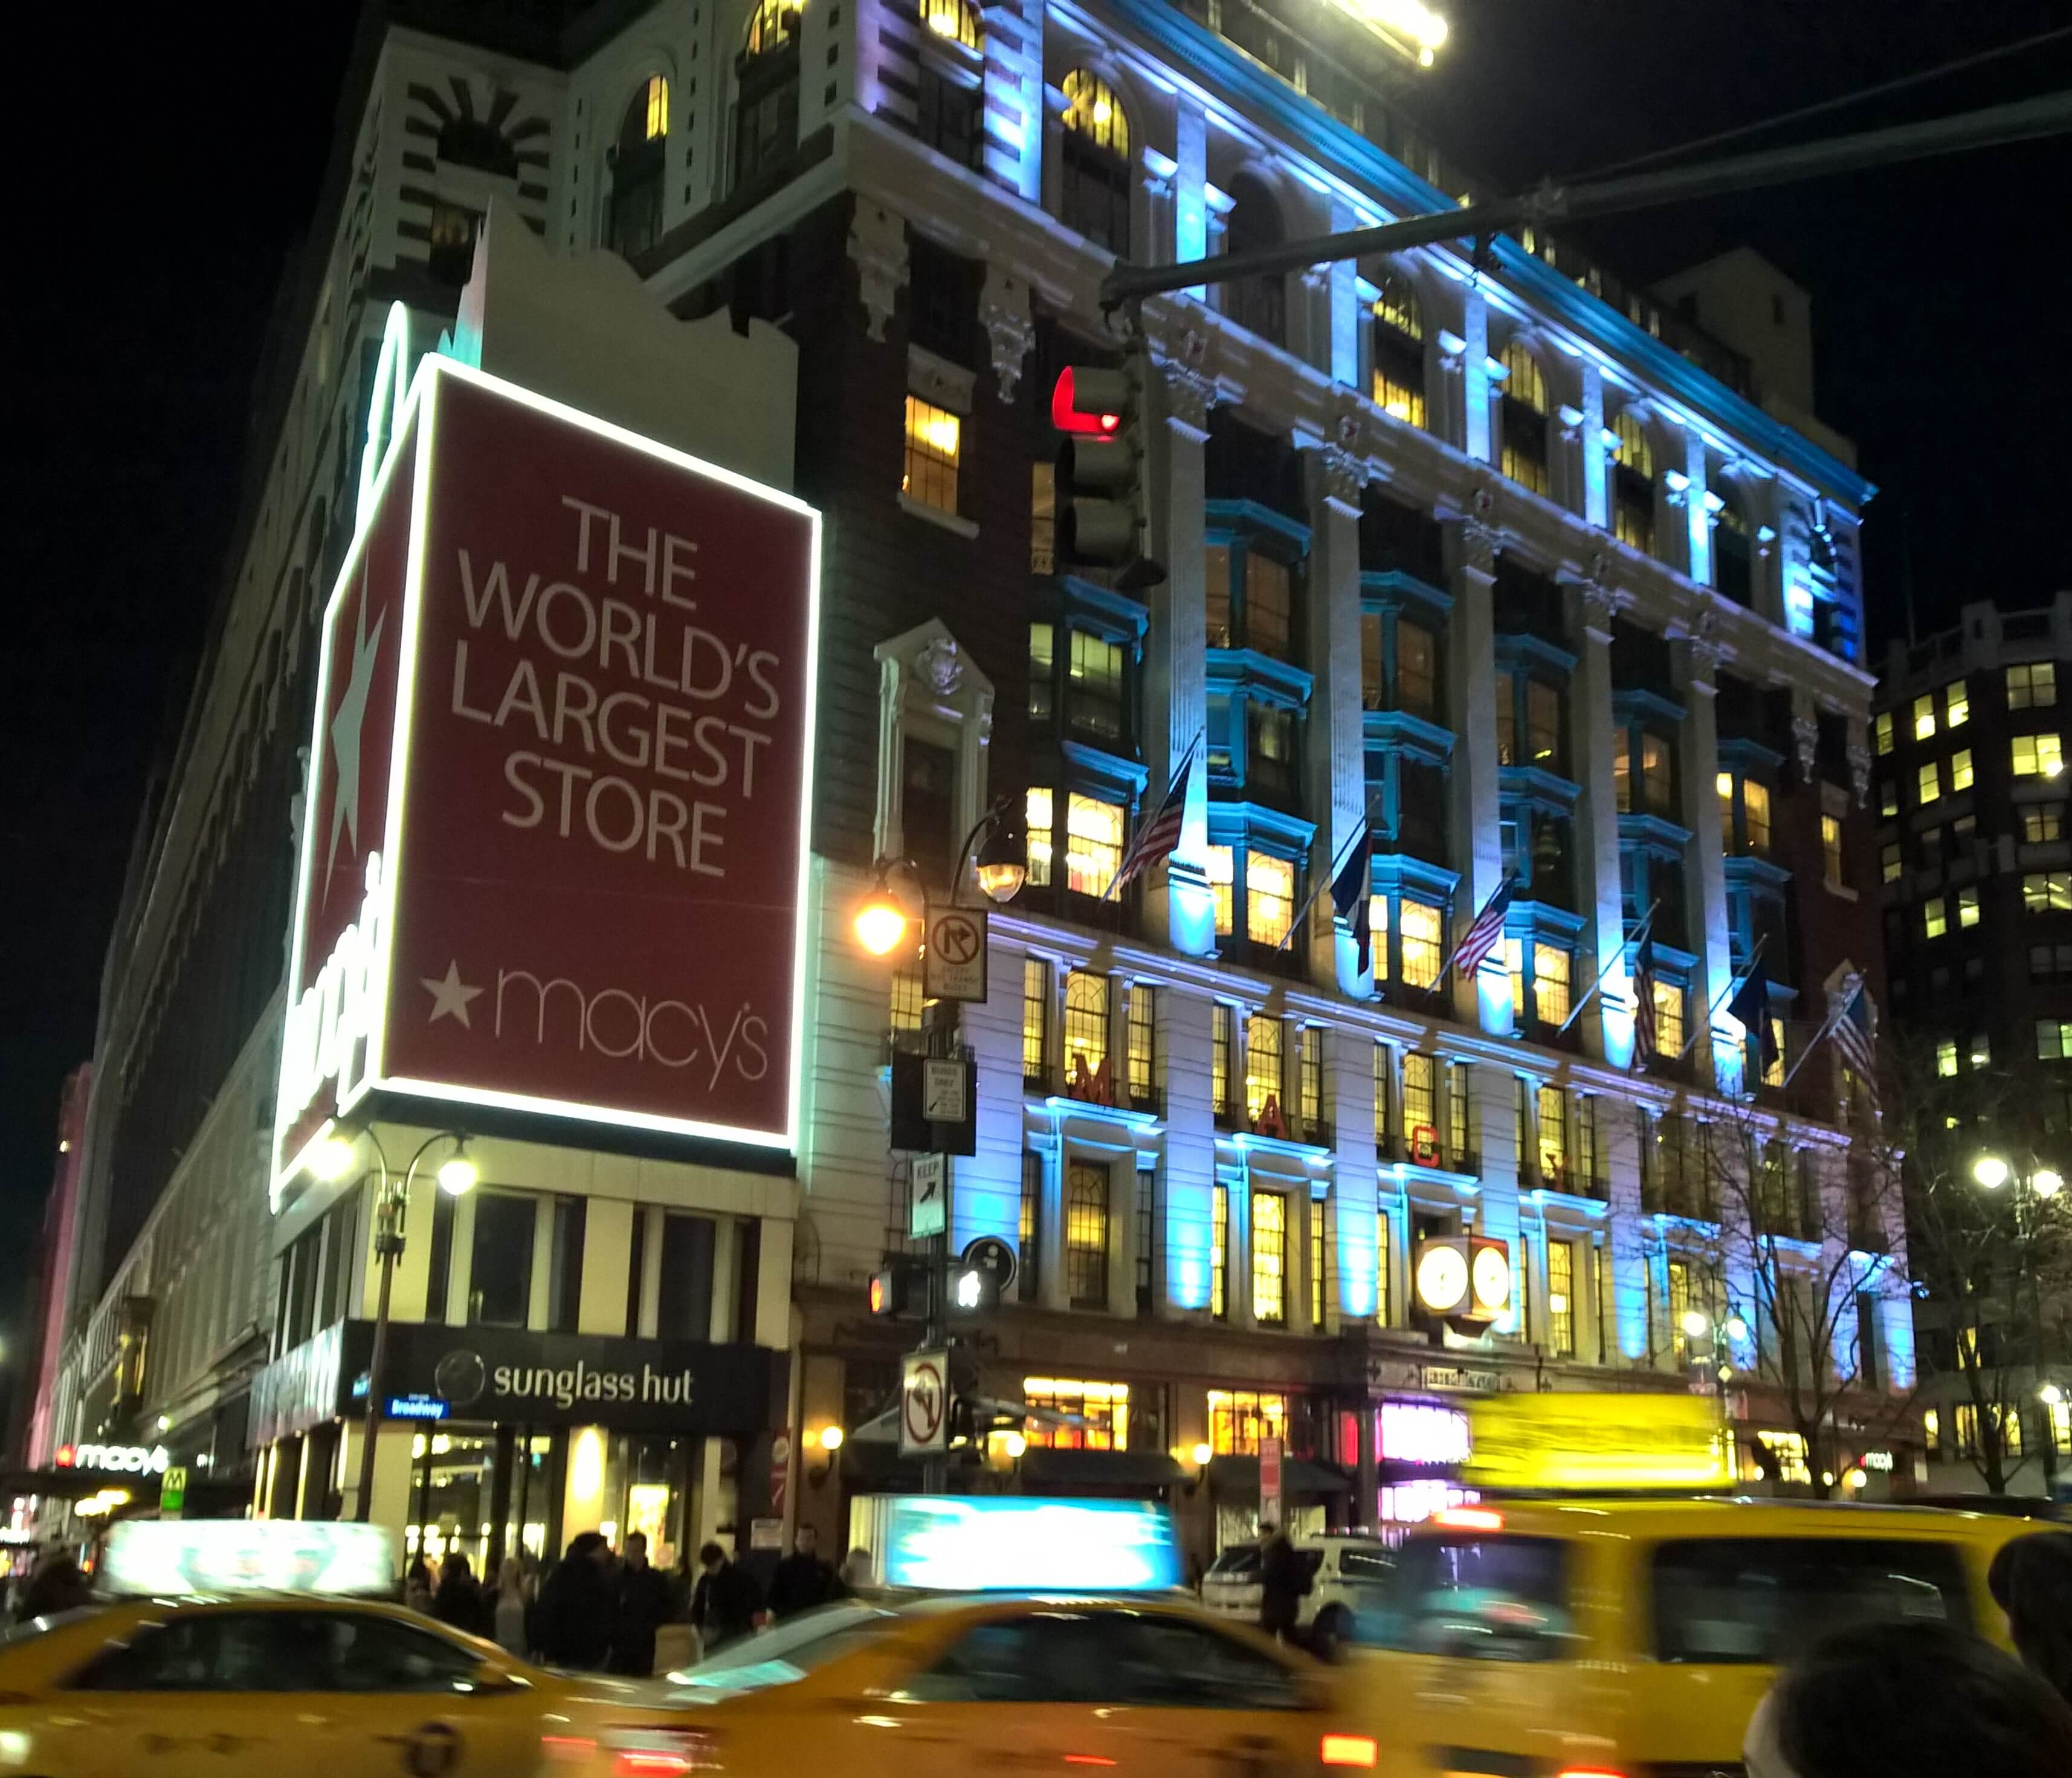 Macy Department Store New York (by Brand Pilots)